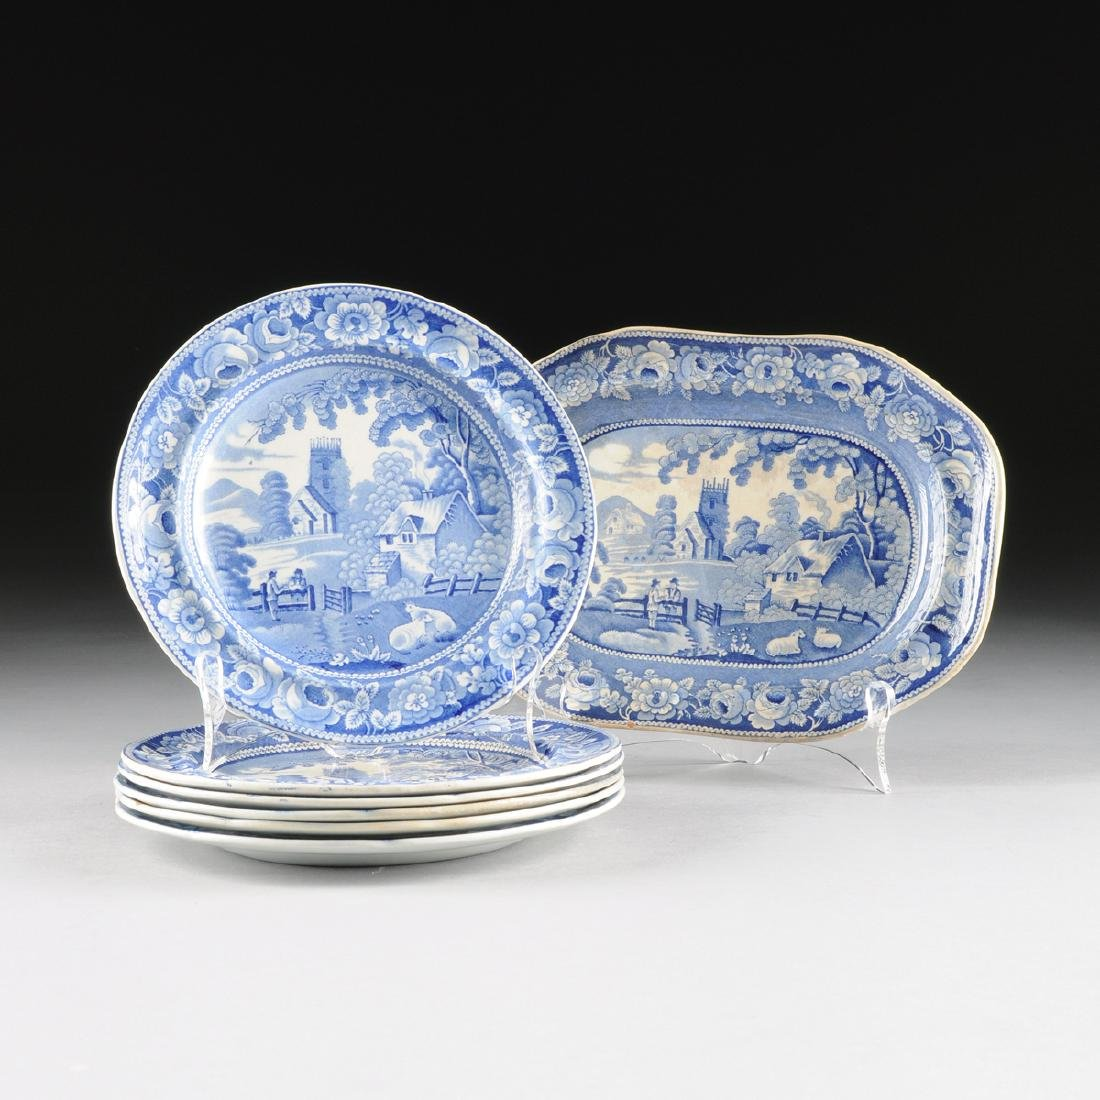 AN ASSEMBLED GROUP OF SIX STAFFORDSHIRE BLUE AND WHITE